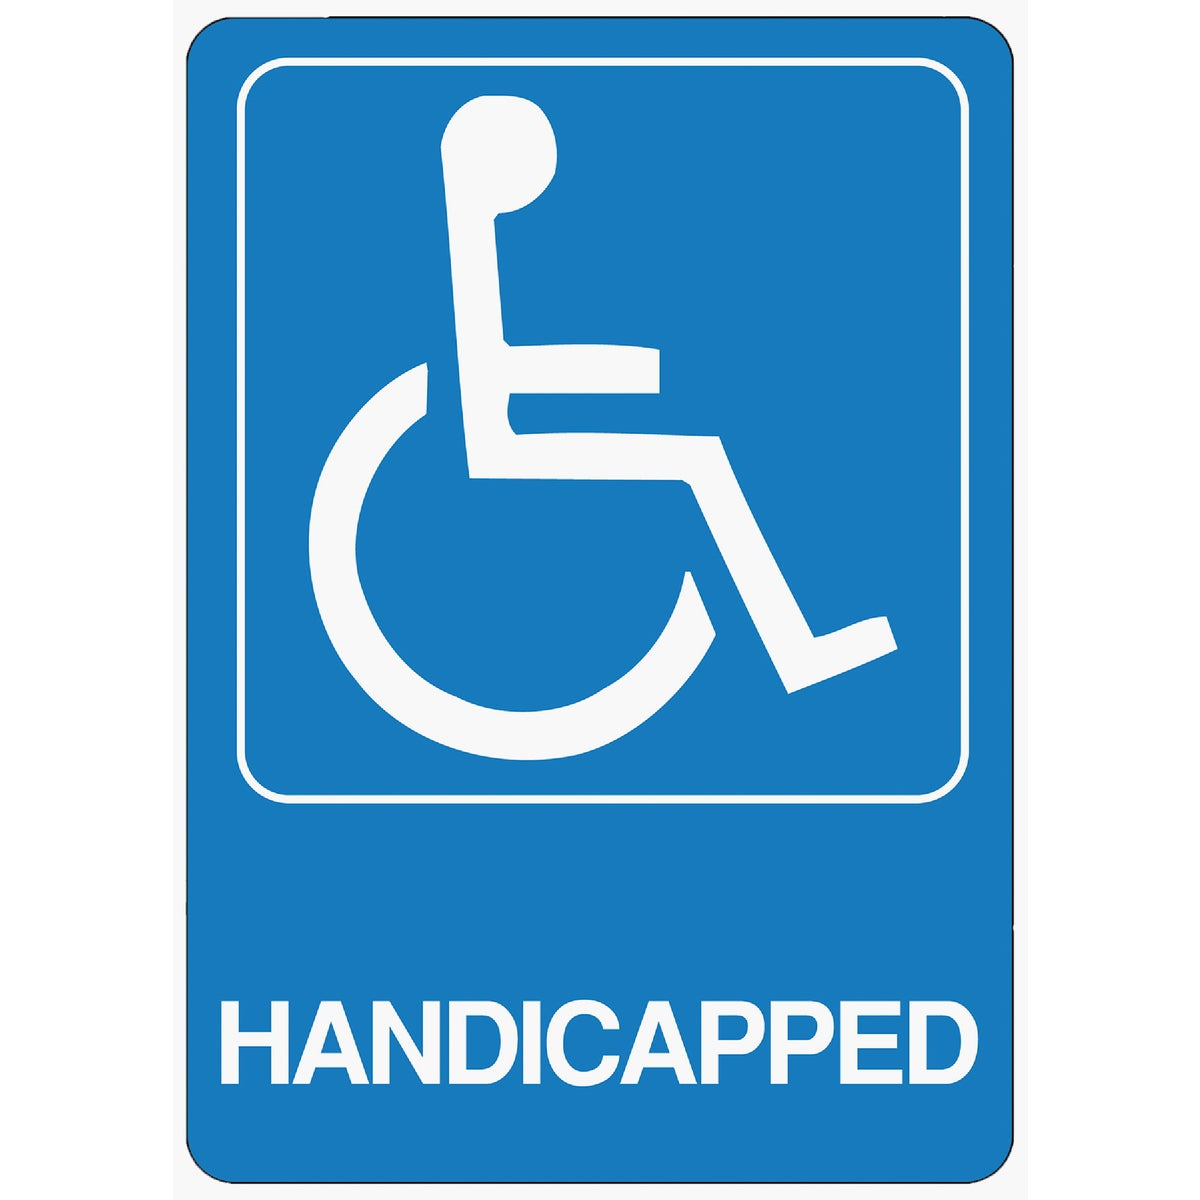 5X7 HANDICAPPED SIGN - D-17 by Hy Ko Prods Co